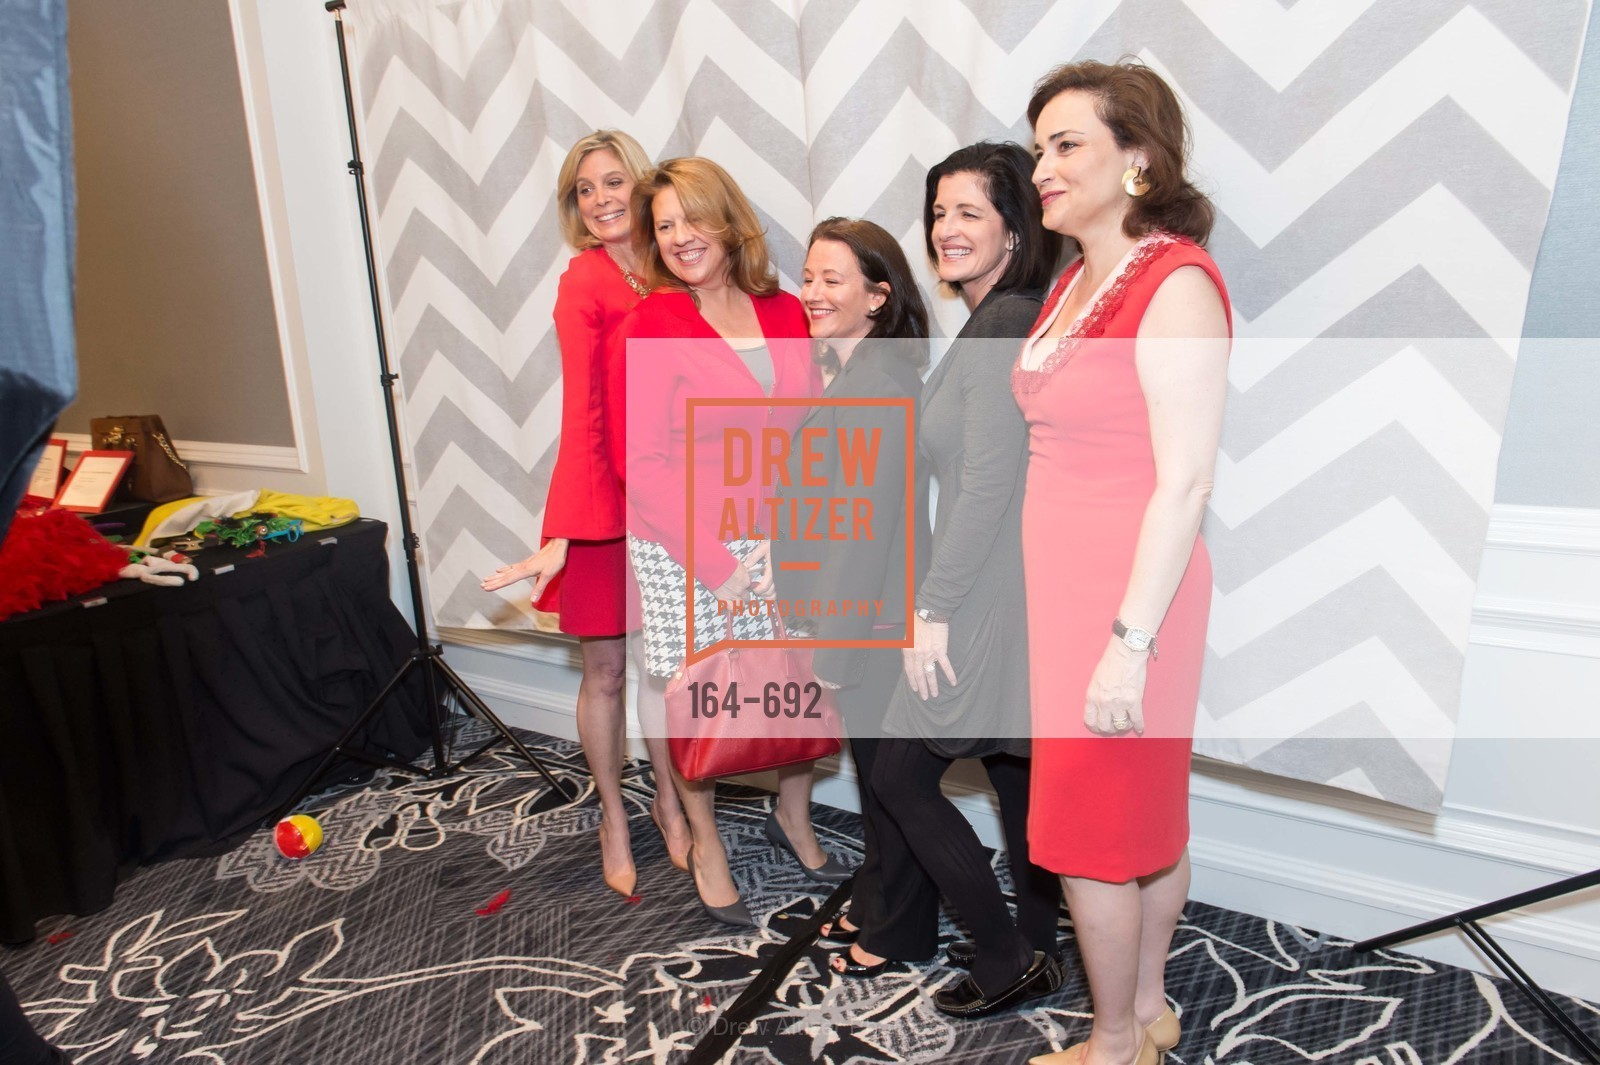 Debbie Messemer, Dolly Chammas, 2015 GoRed for Women Luncheon, US, May 2nd, 2015,Drew Altizer, Drew Altizer Photography, full-service agency, private events, San Francisco photographer, photographer california